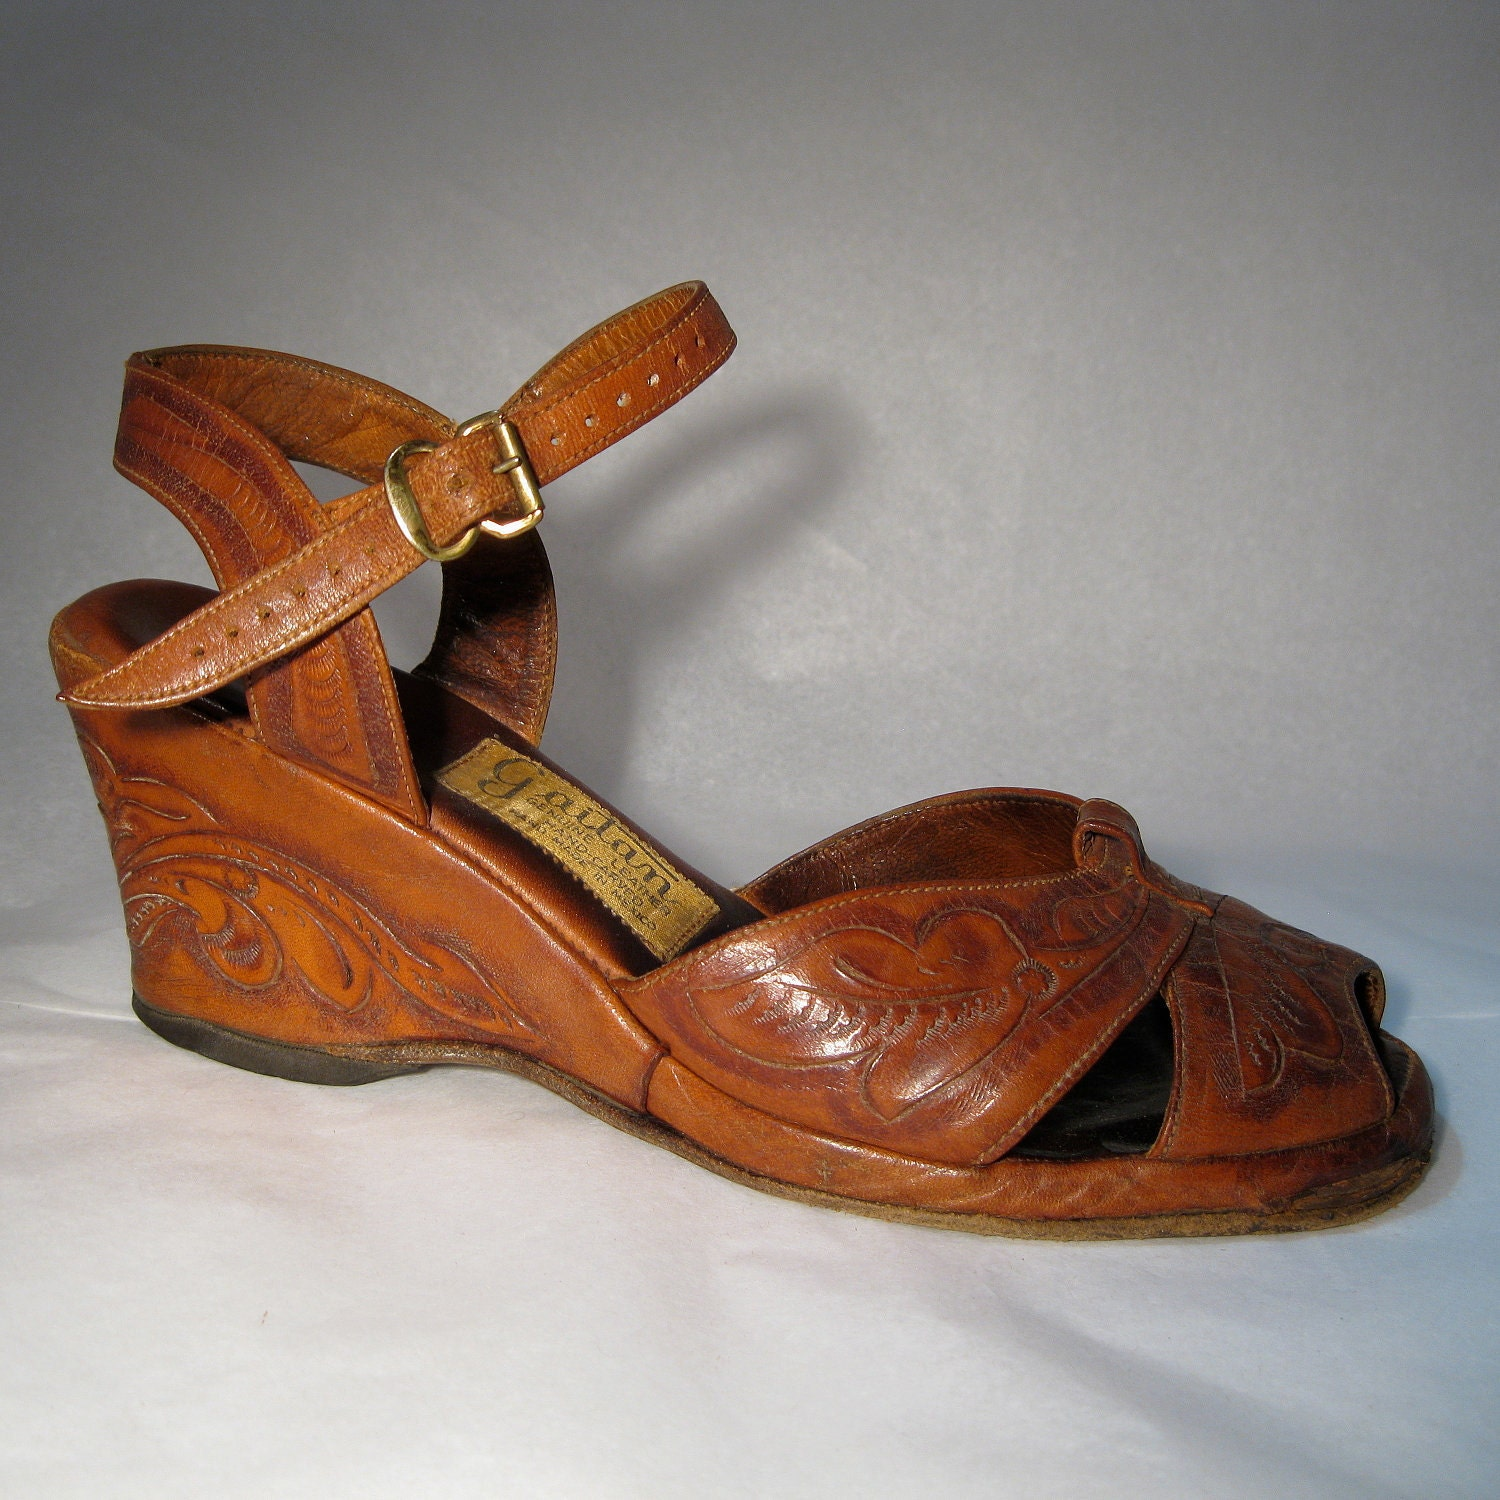 vintage 1940s wedge shoes handtooled leather by alexsandras